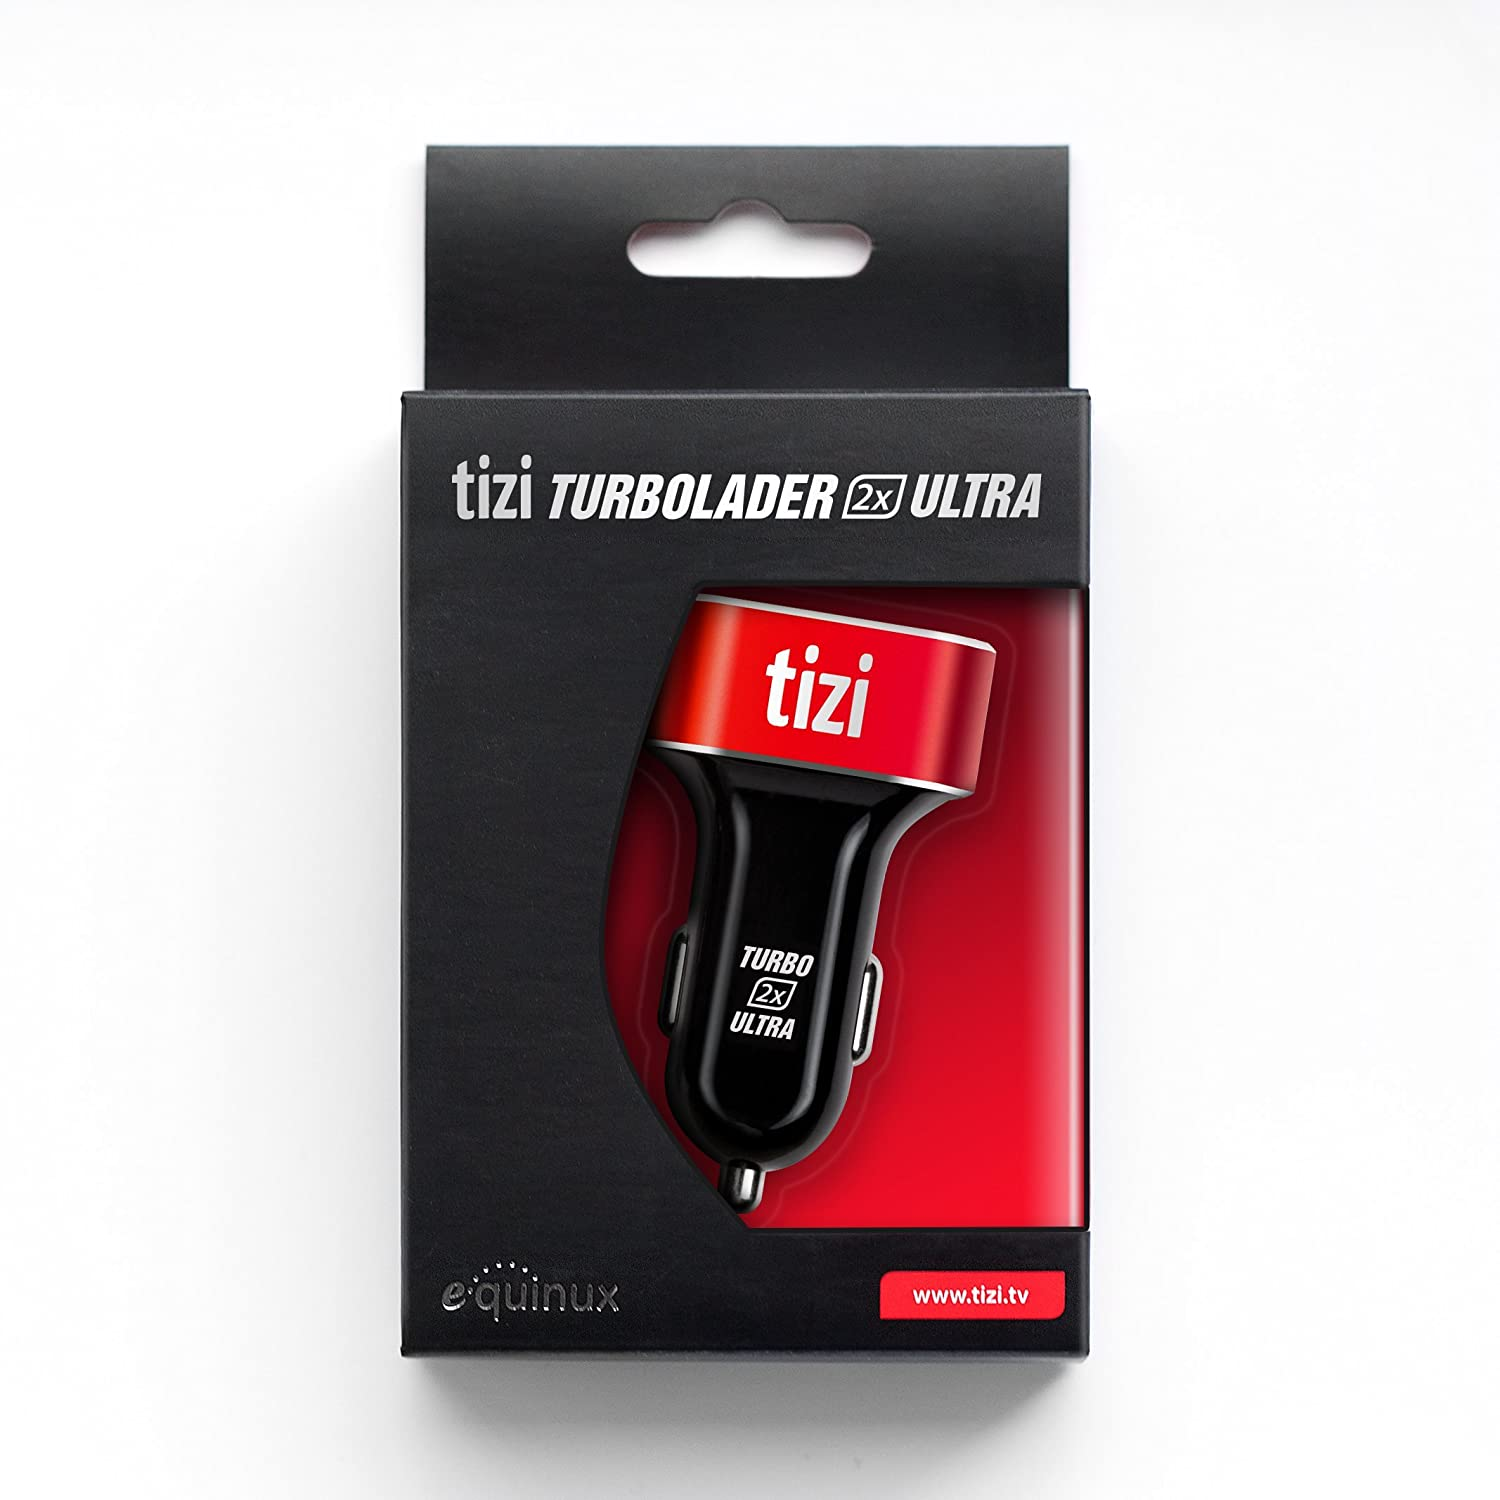 equinux New Tizi Turbolader 2X Ultra 42W, High Powered Car Charger with USB-C + USB-A Ports. 30W PD. Apple-Compatible Charger with Power Delivery, ...